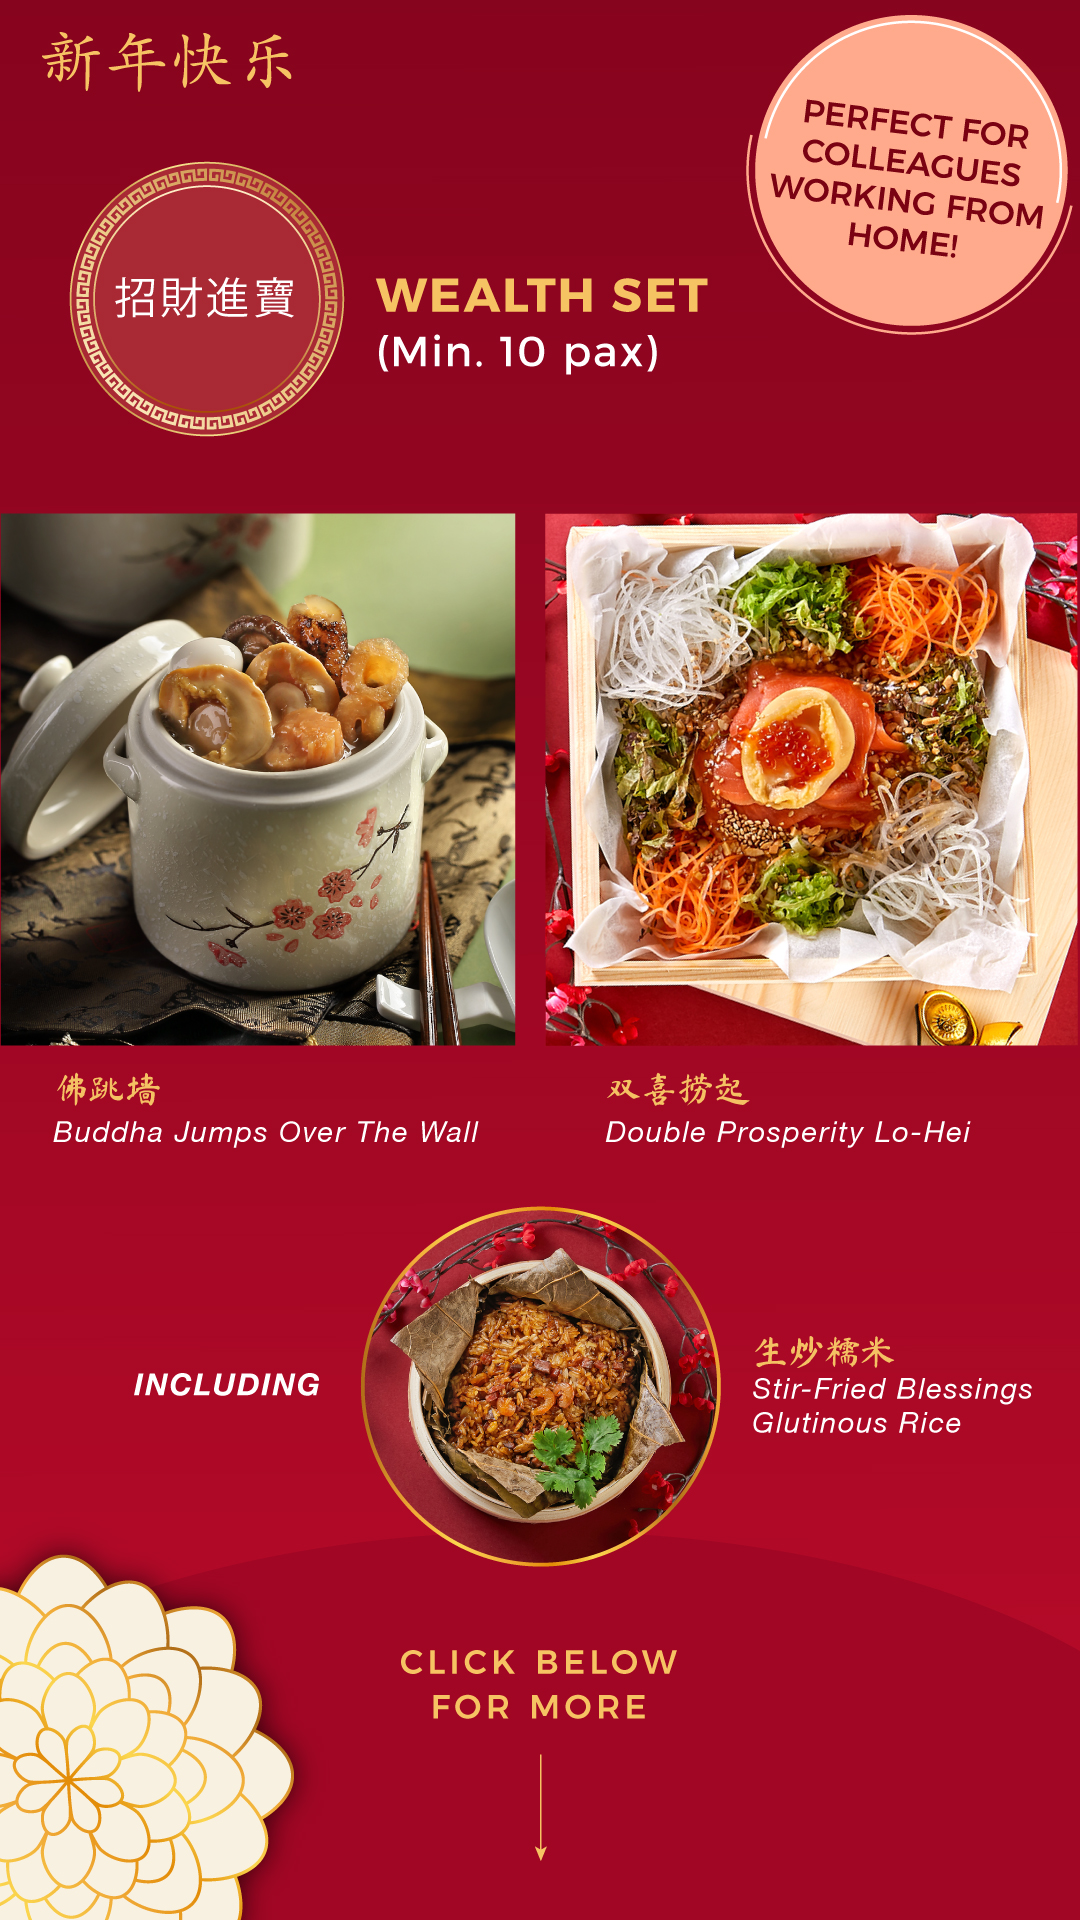 Esseplore's Wealth Set Meal with Buddha Jumps Over the Wall, Double Prosperity Lo-Hei and a Stir-Fried Blessings Glutinous Rice add-on